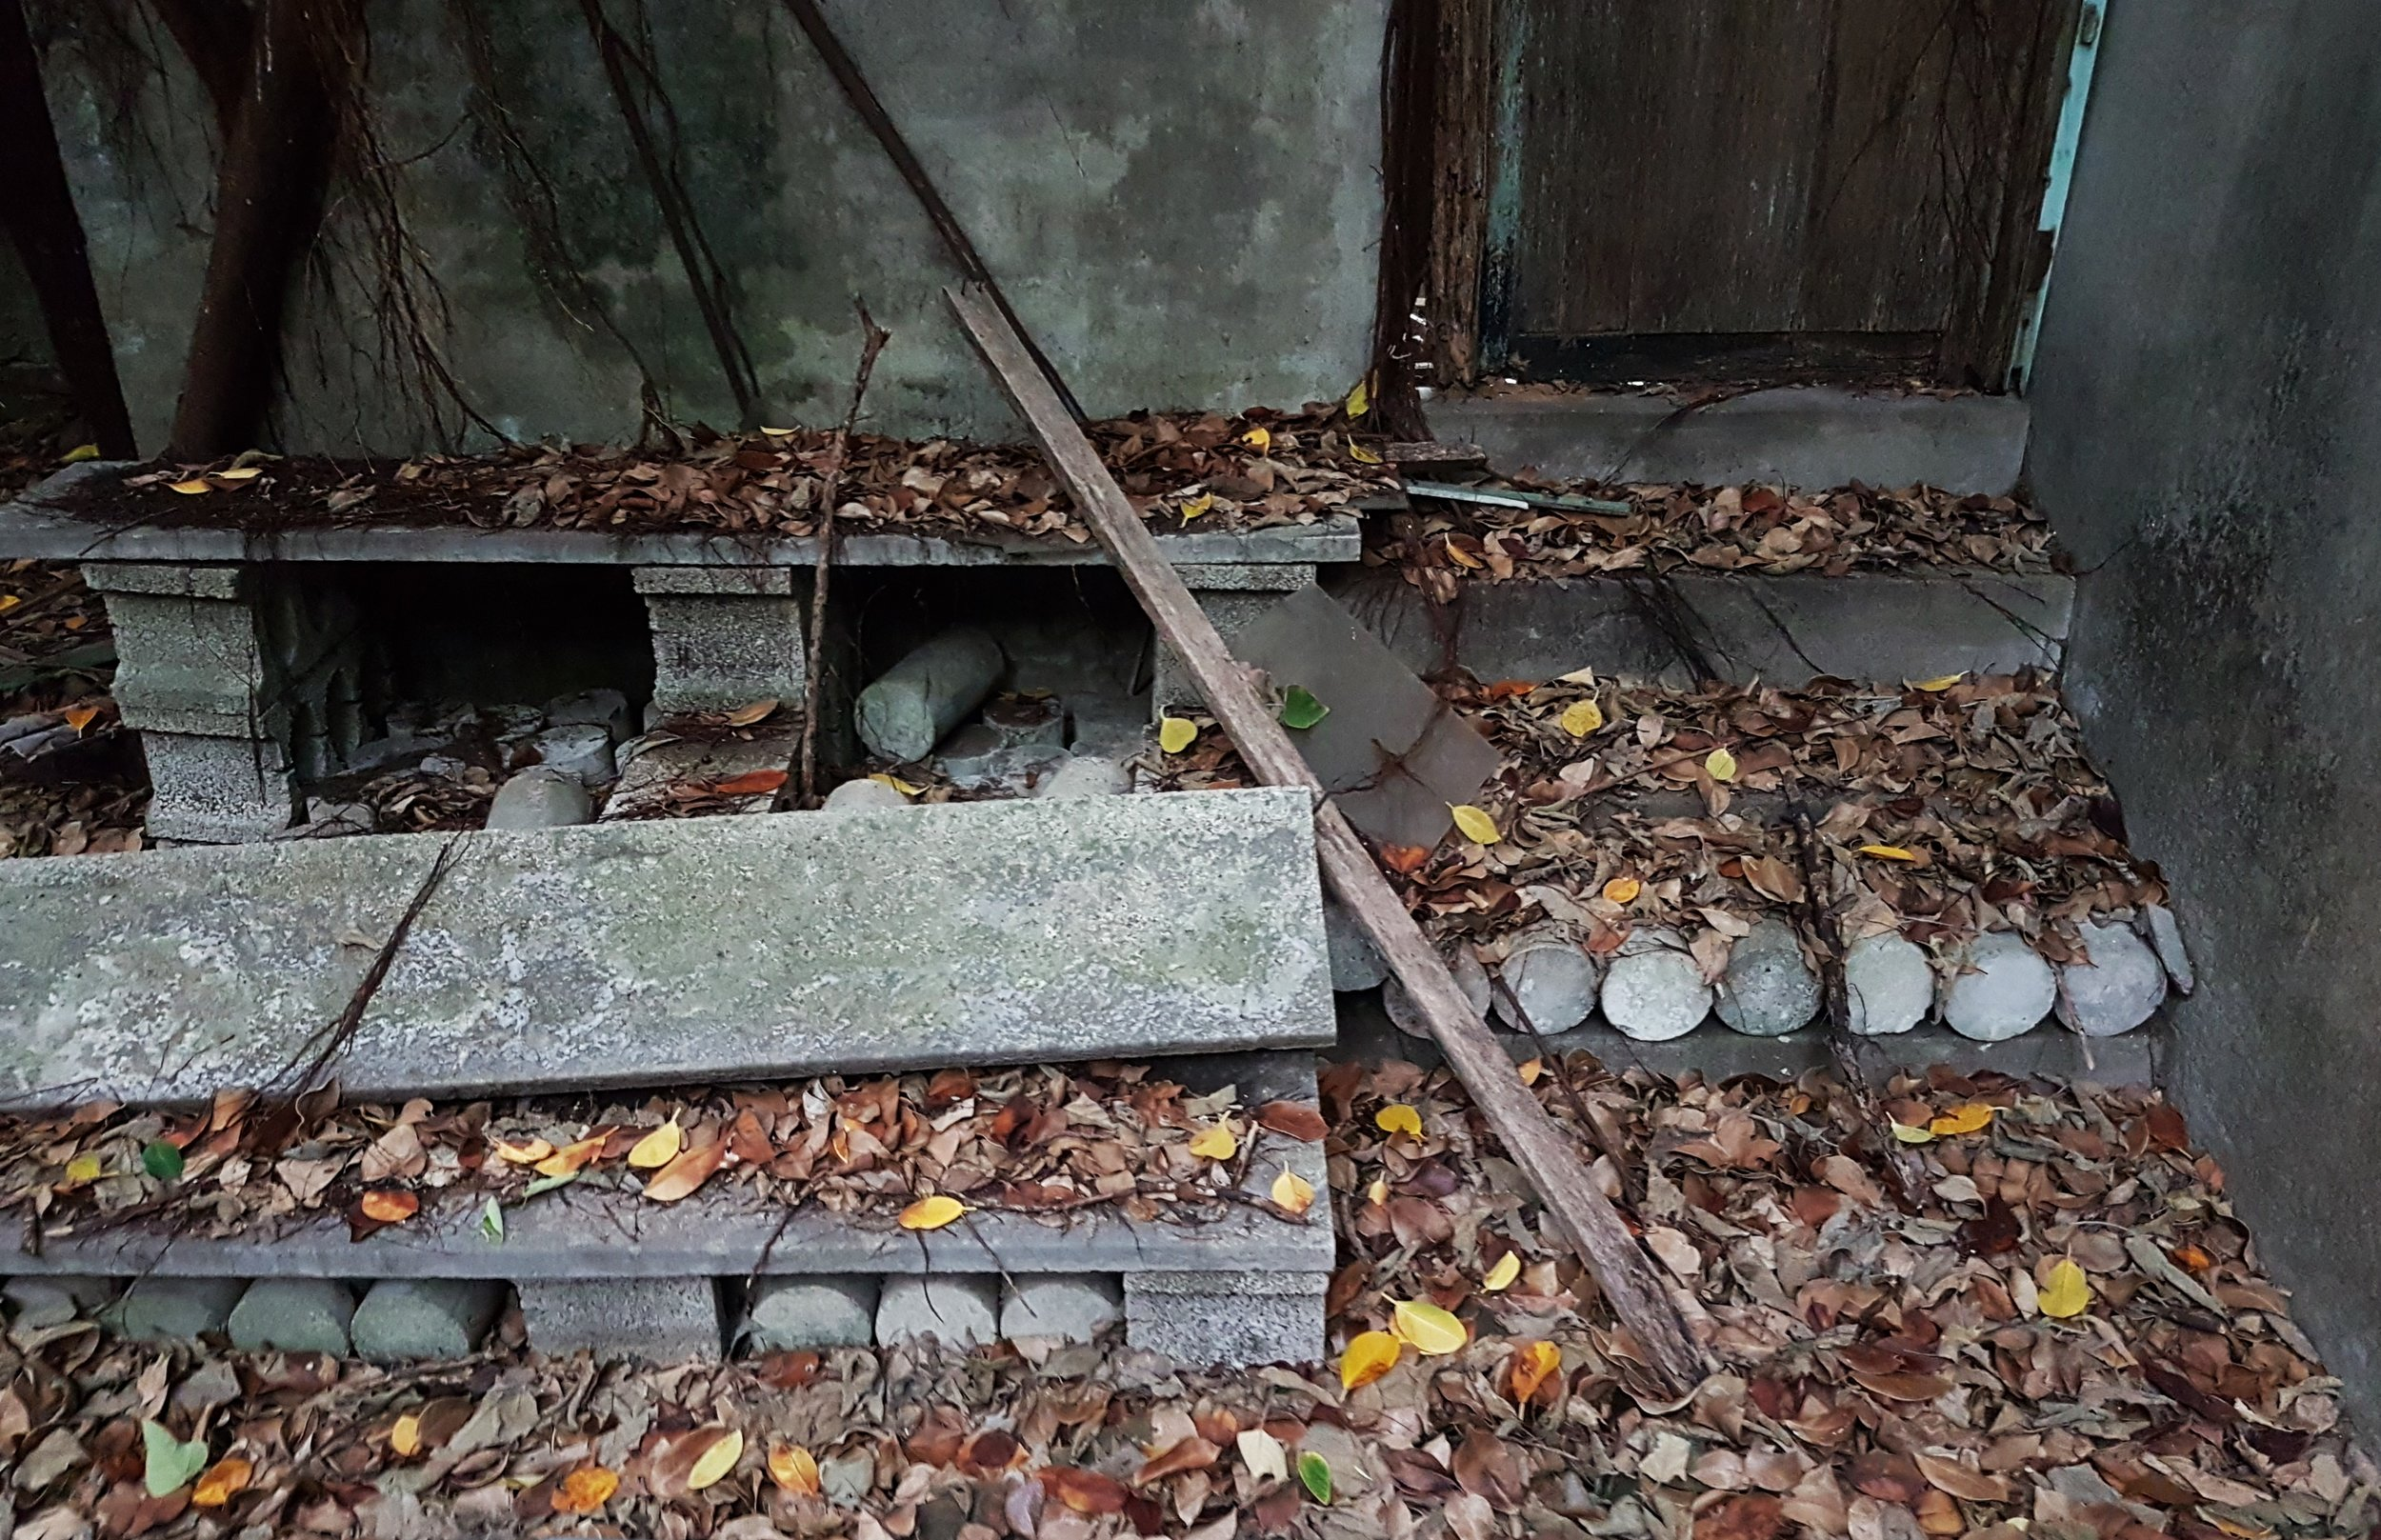 An unusual floor outside a building next to the hall. I think this may have been a bathroom or kitchen but the door was jammed. I haven't seen many round stones like these before and am not sure what they are for.